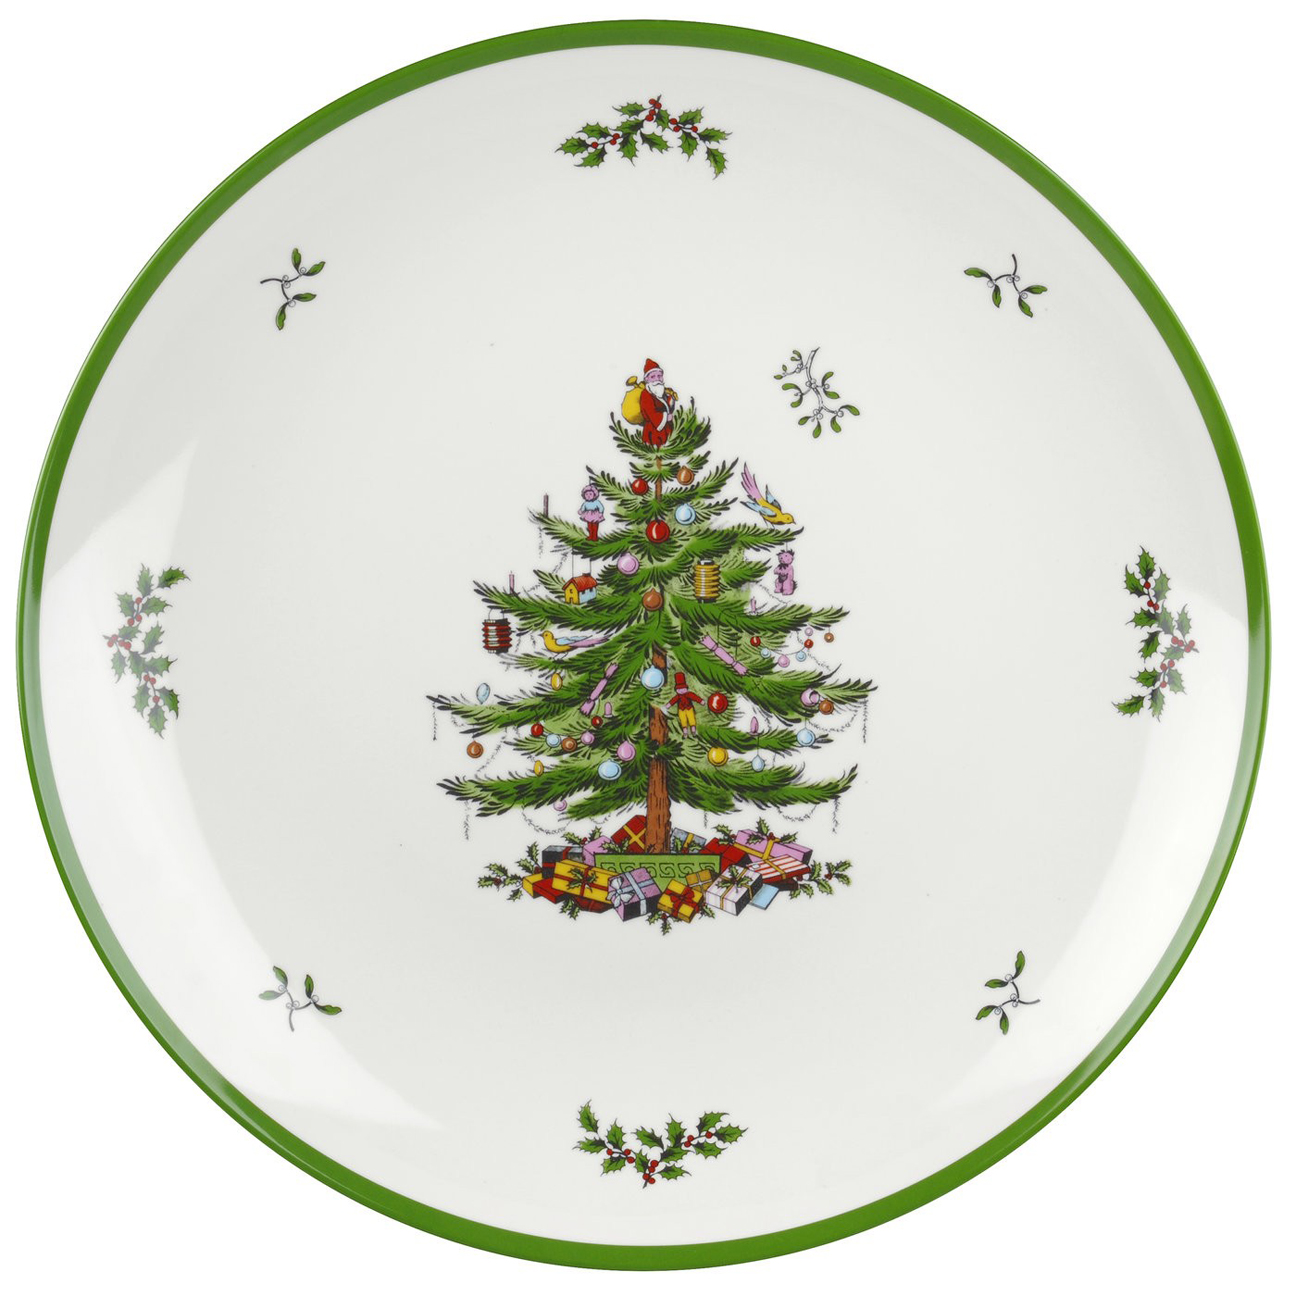 Spode Christmas Tree China Sale: Spode Christmas Tree Melamine Round Platter $19.99, You